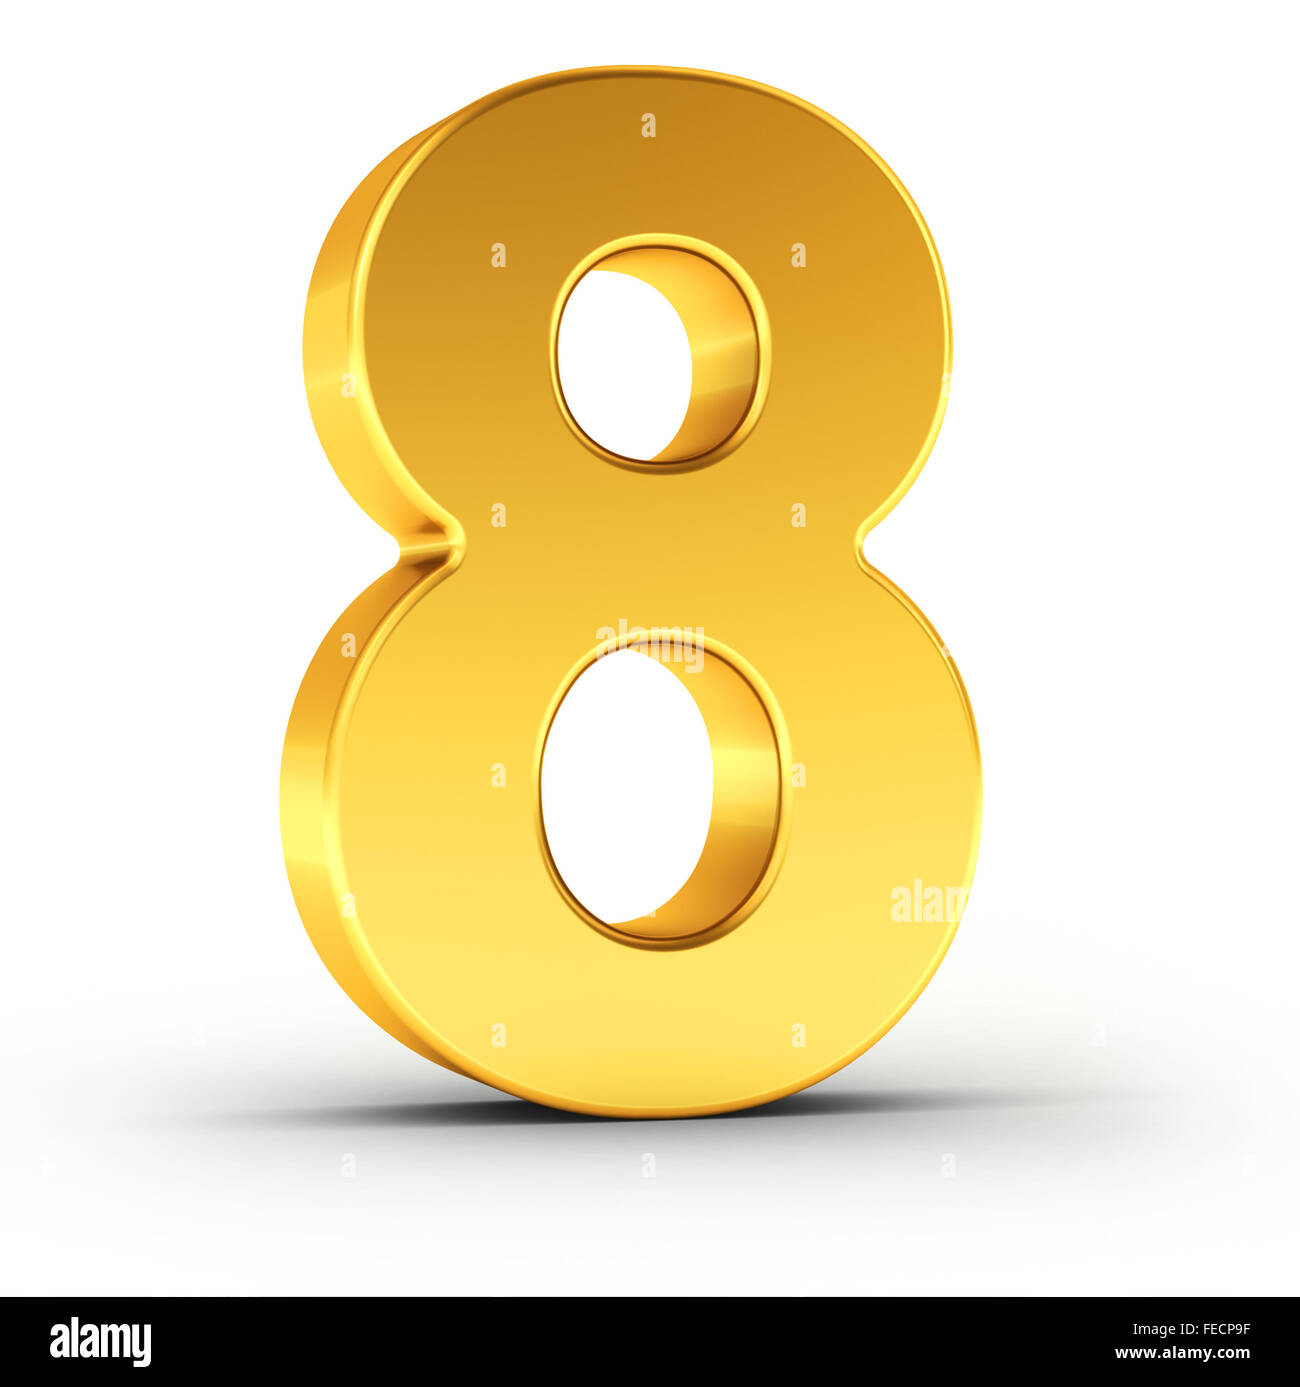 The number eight as a polished golden object - Stock Image